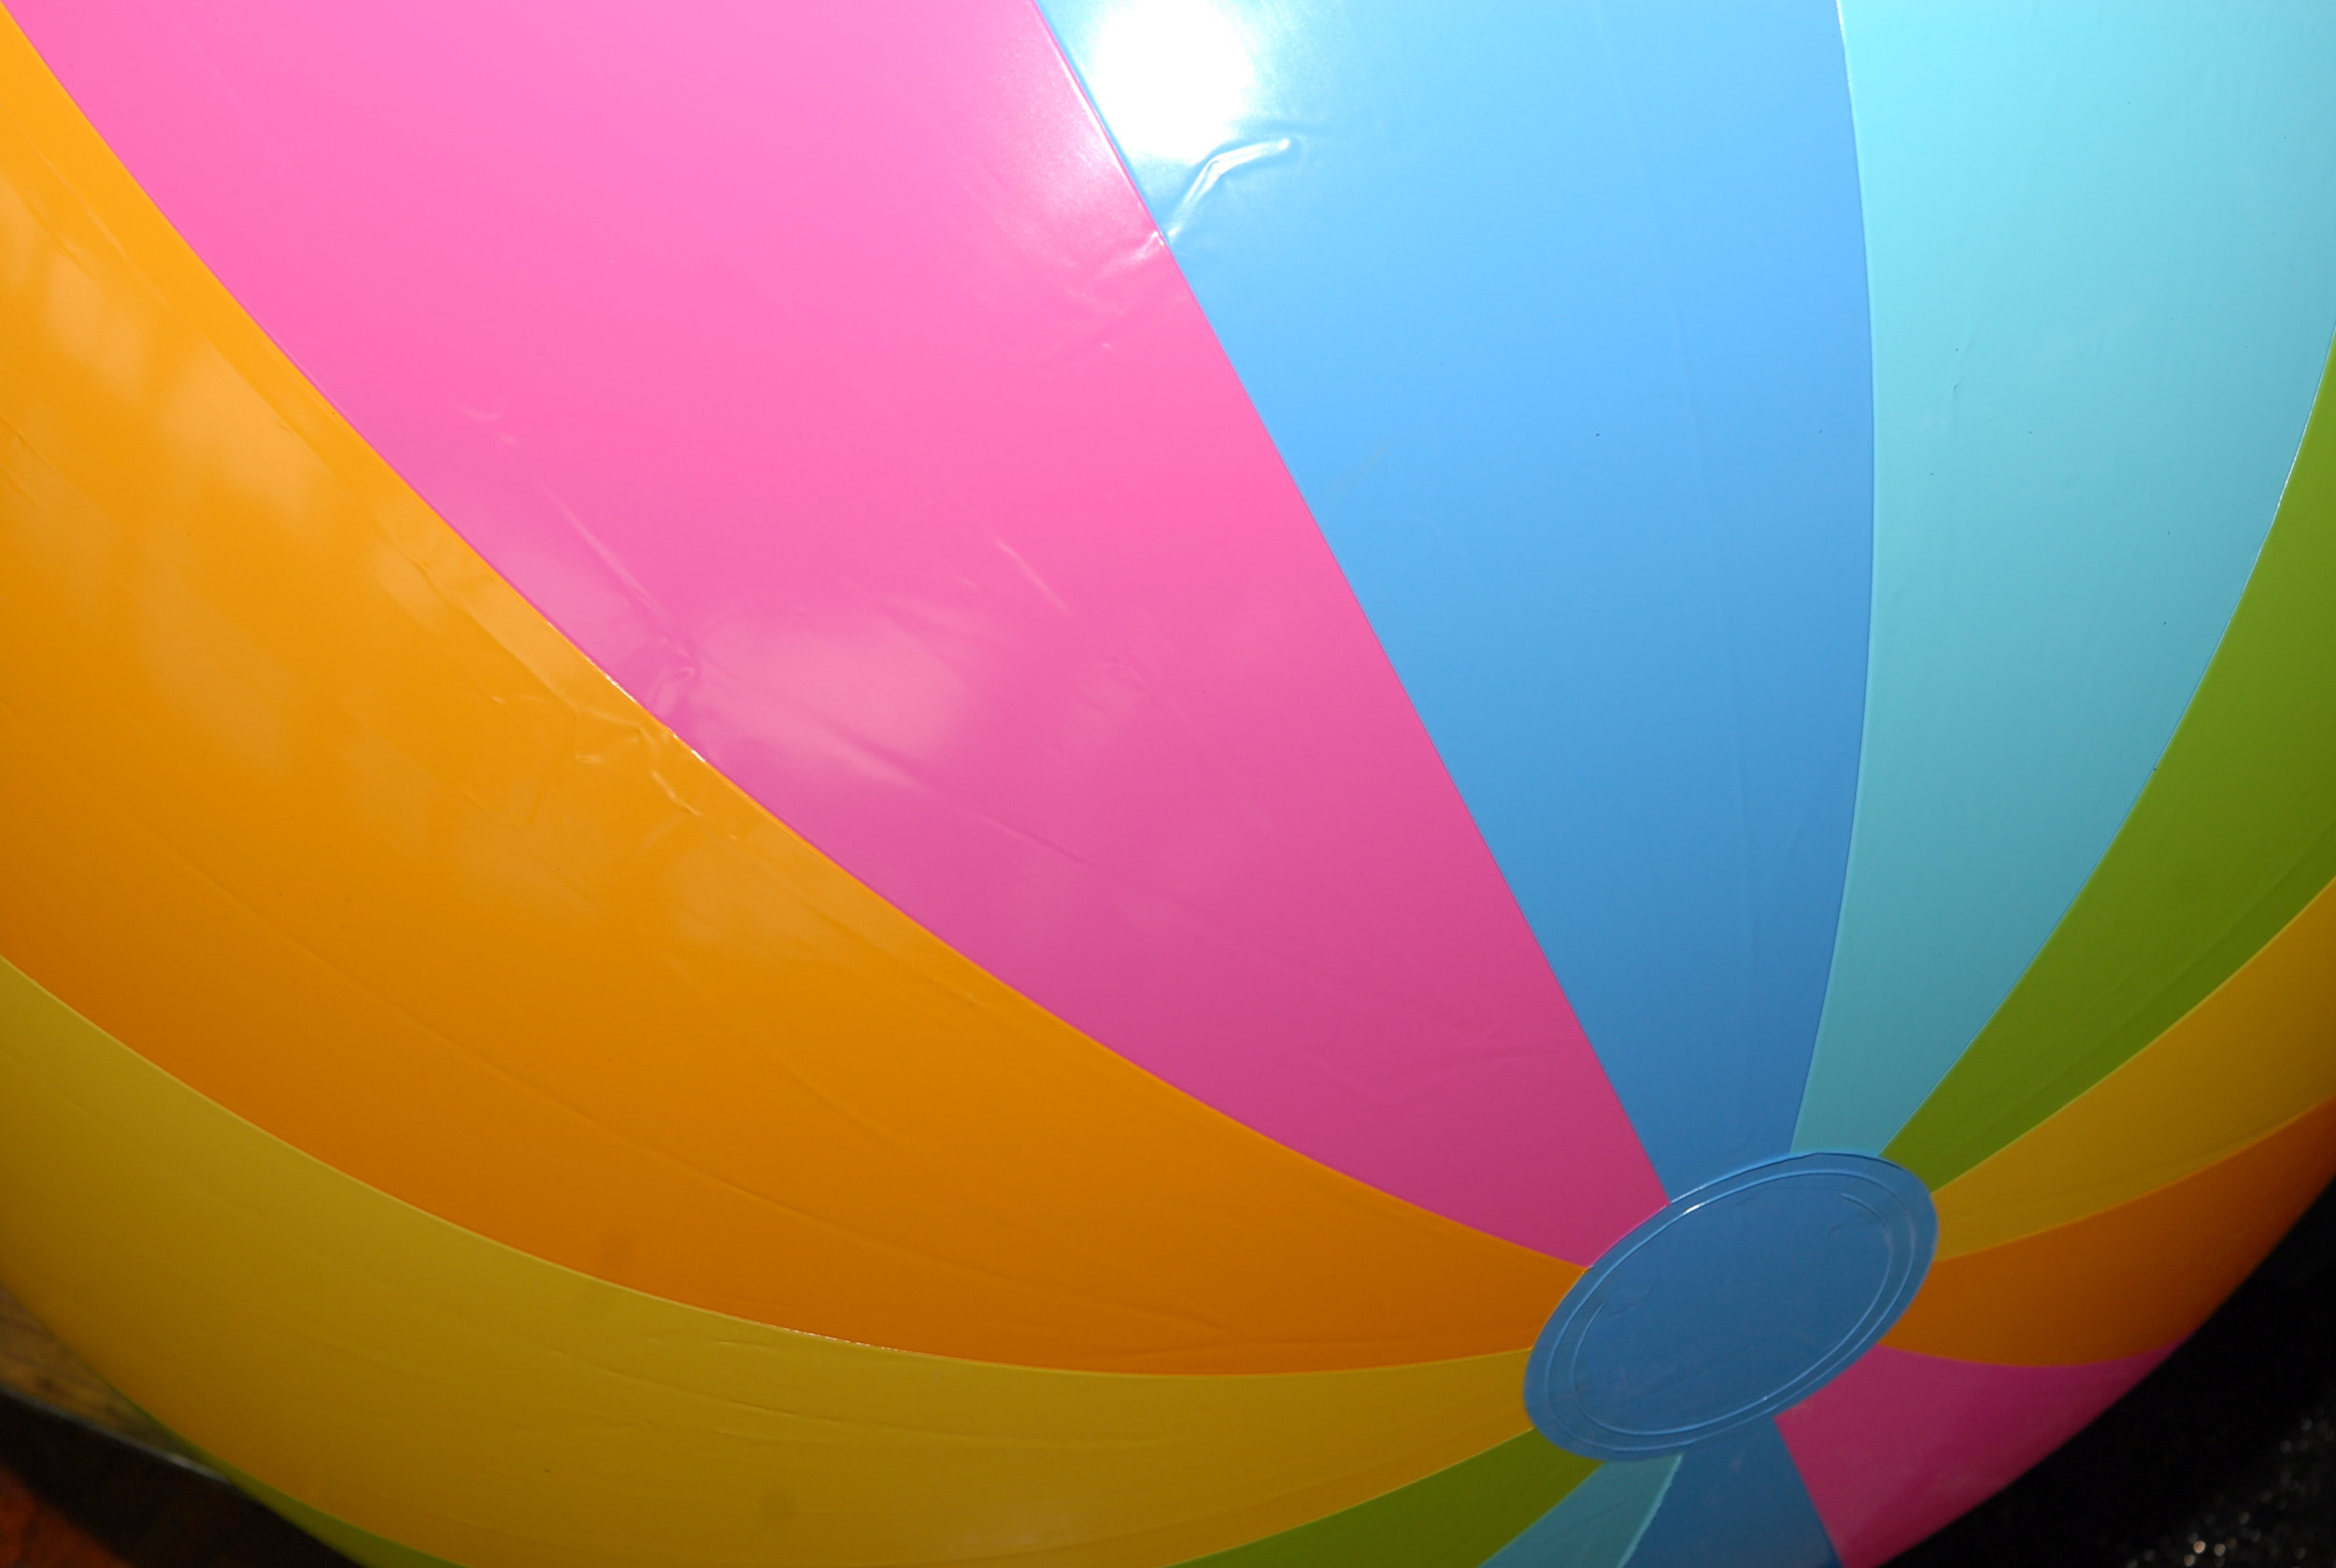 A beach ball for the beach ball gala